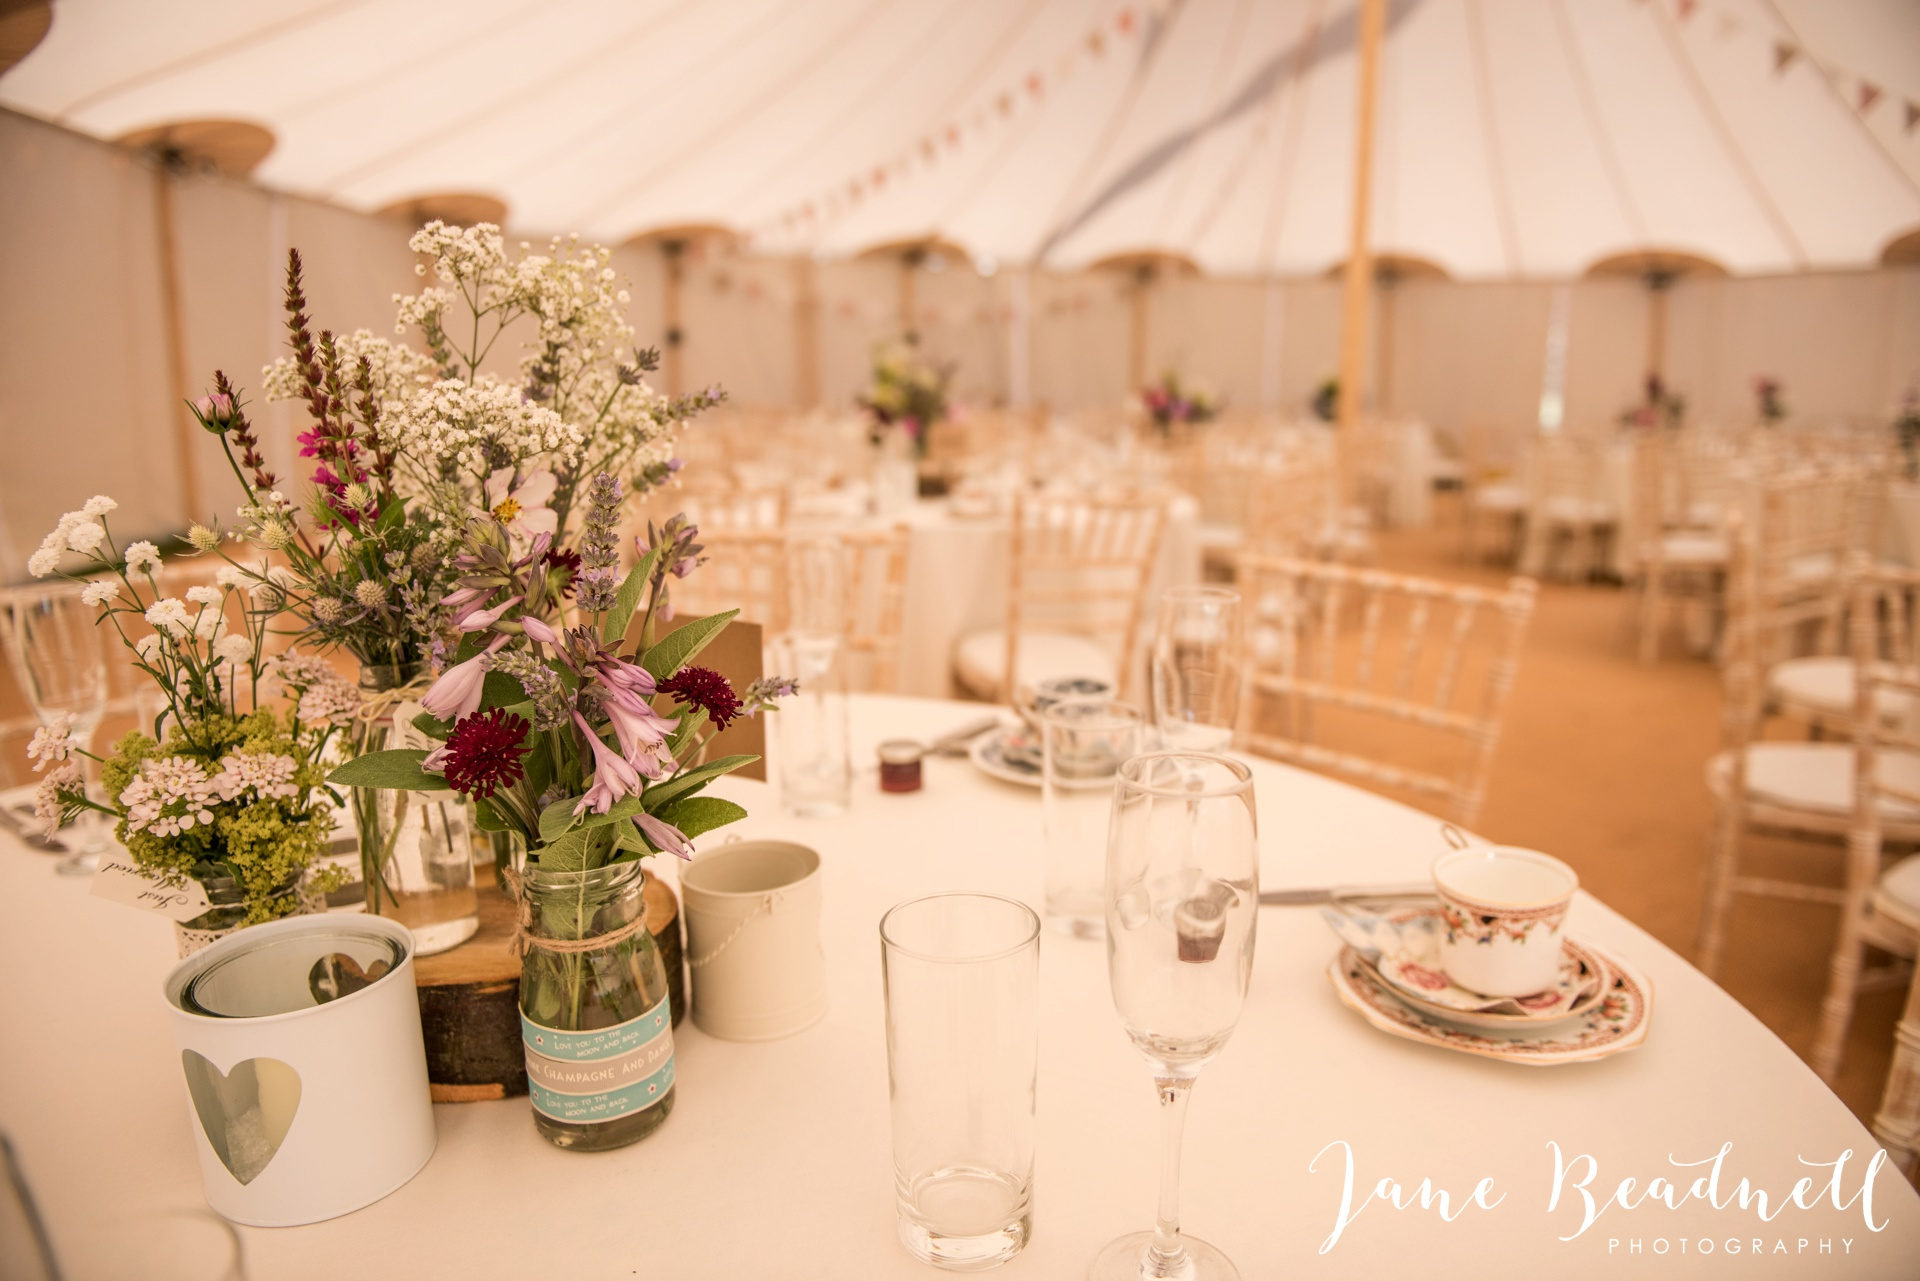 Jane Beadnell fine art wedding photographer Sperry Tent wedding Ilkley_0005